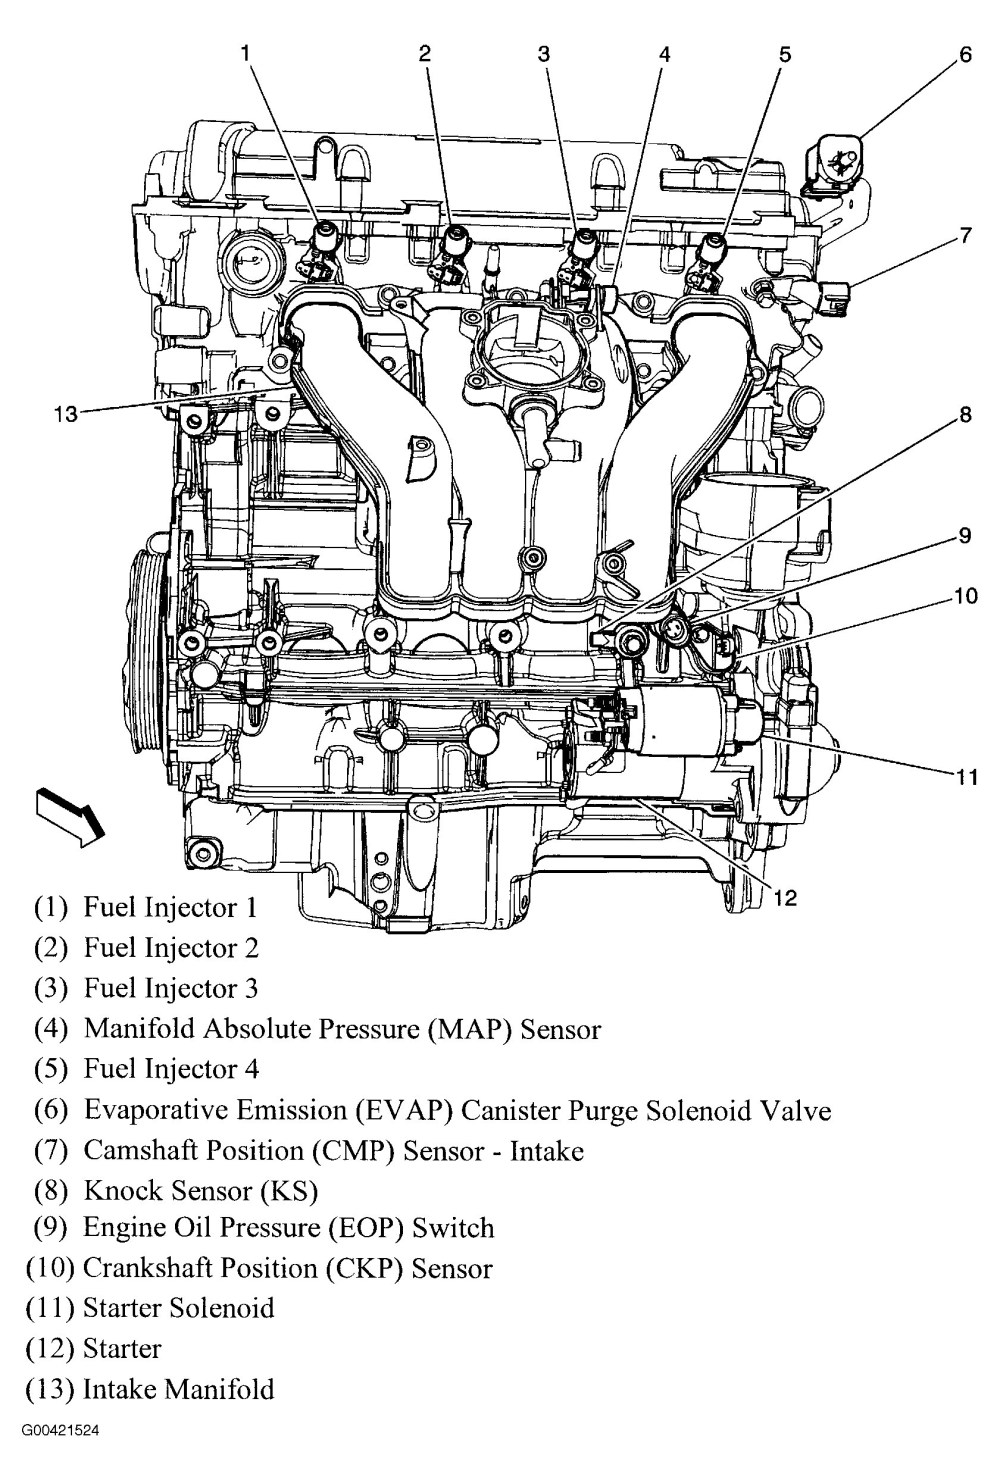 medium resolution of dodge 4 7 liter engine diagram wiring diagram toolboxdodge 2 7 liter engine diagram wiring diagram